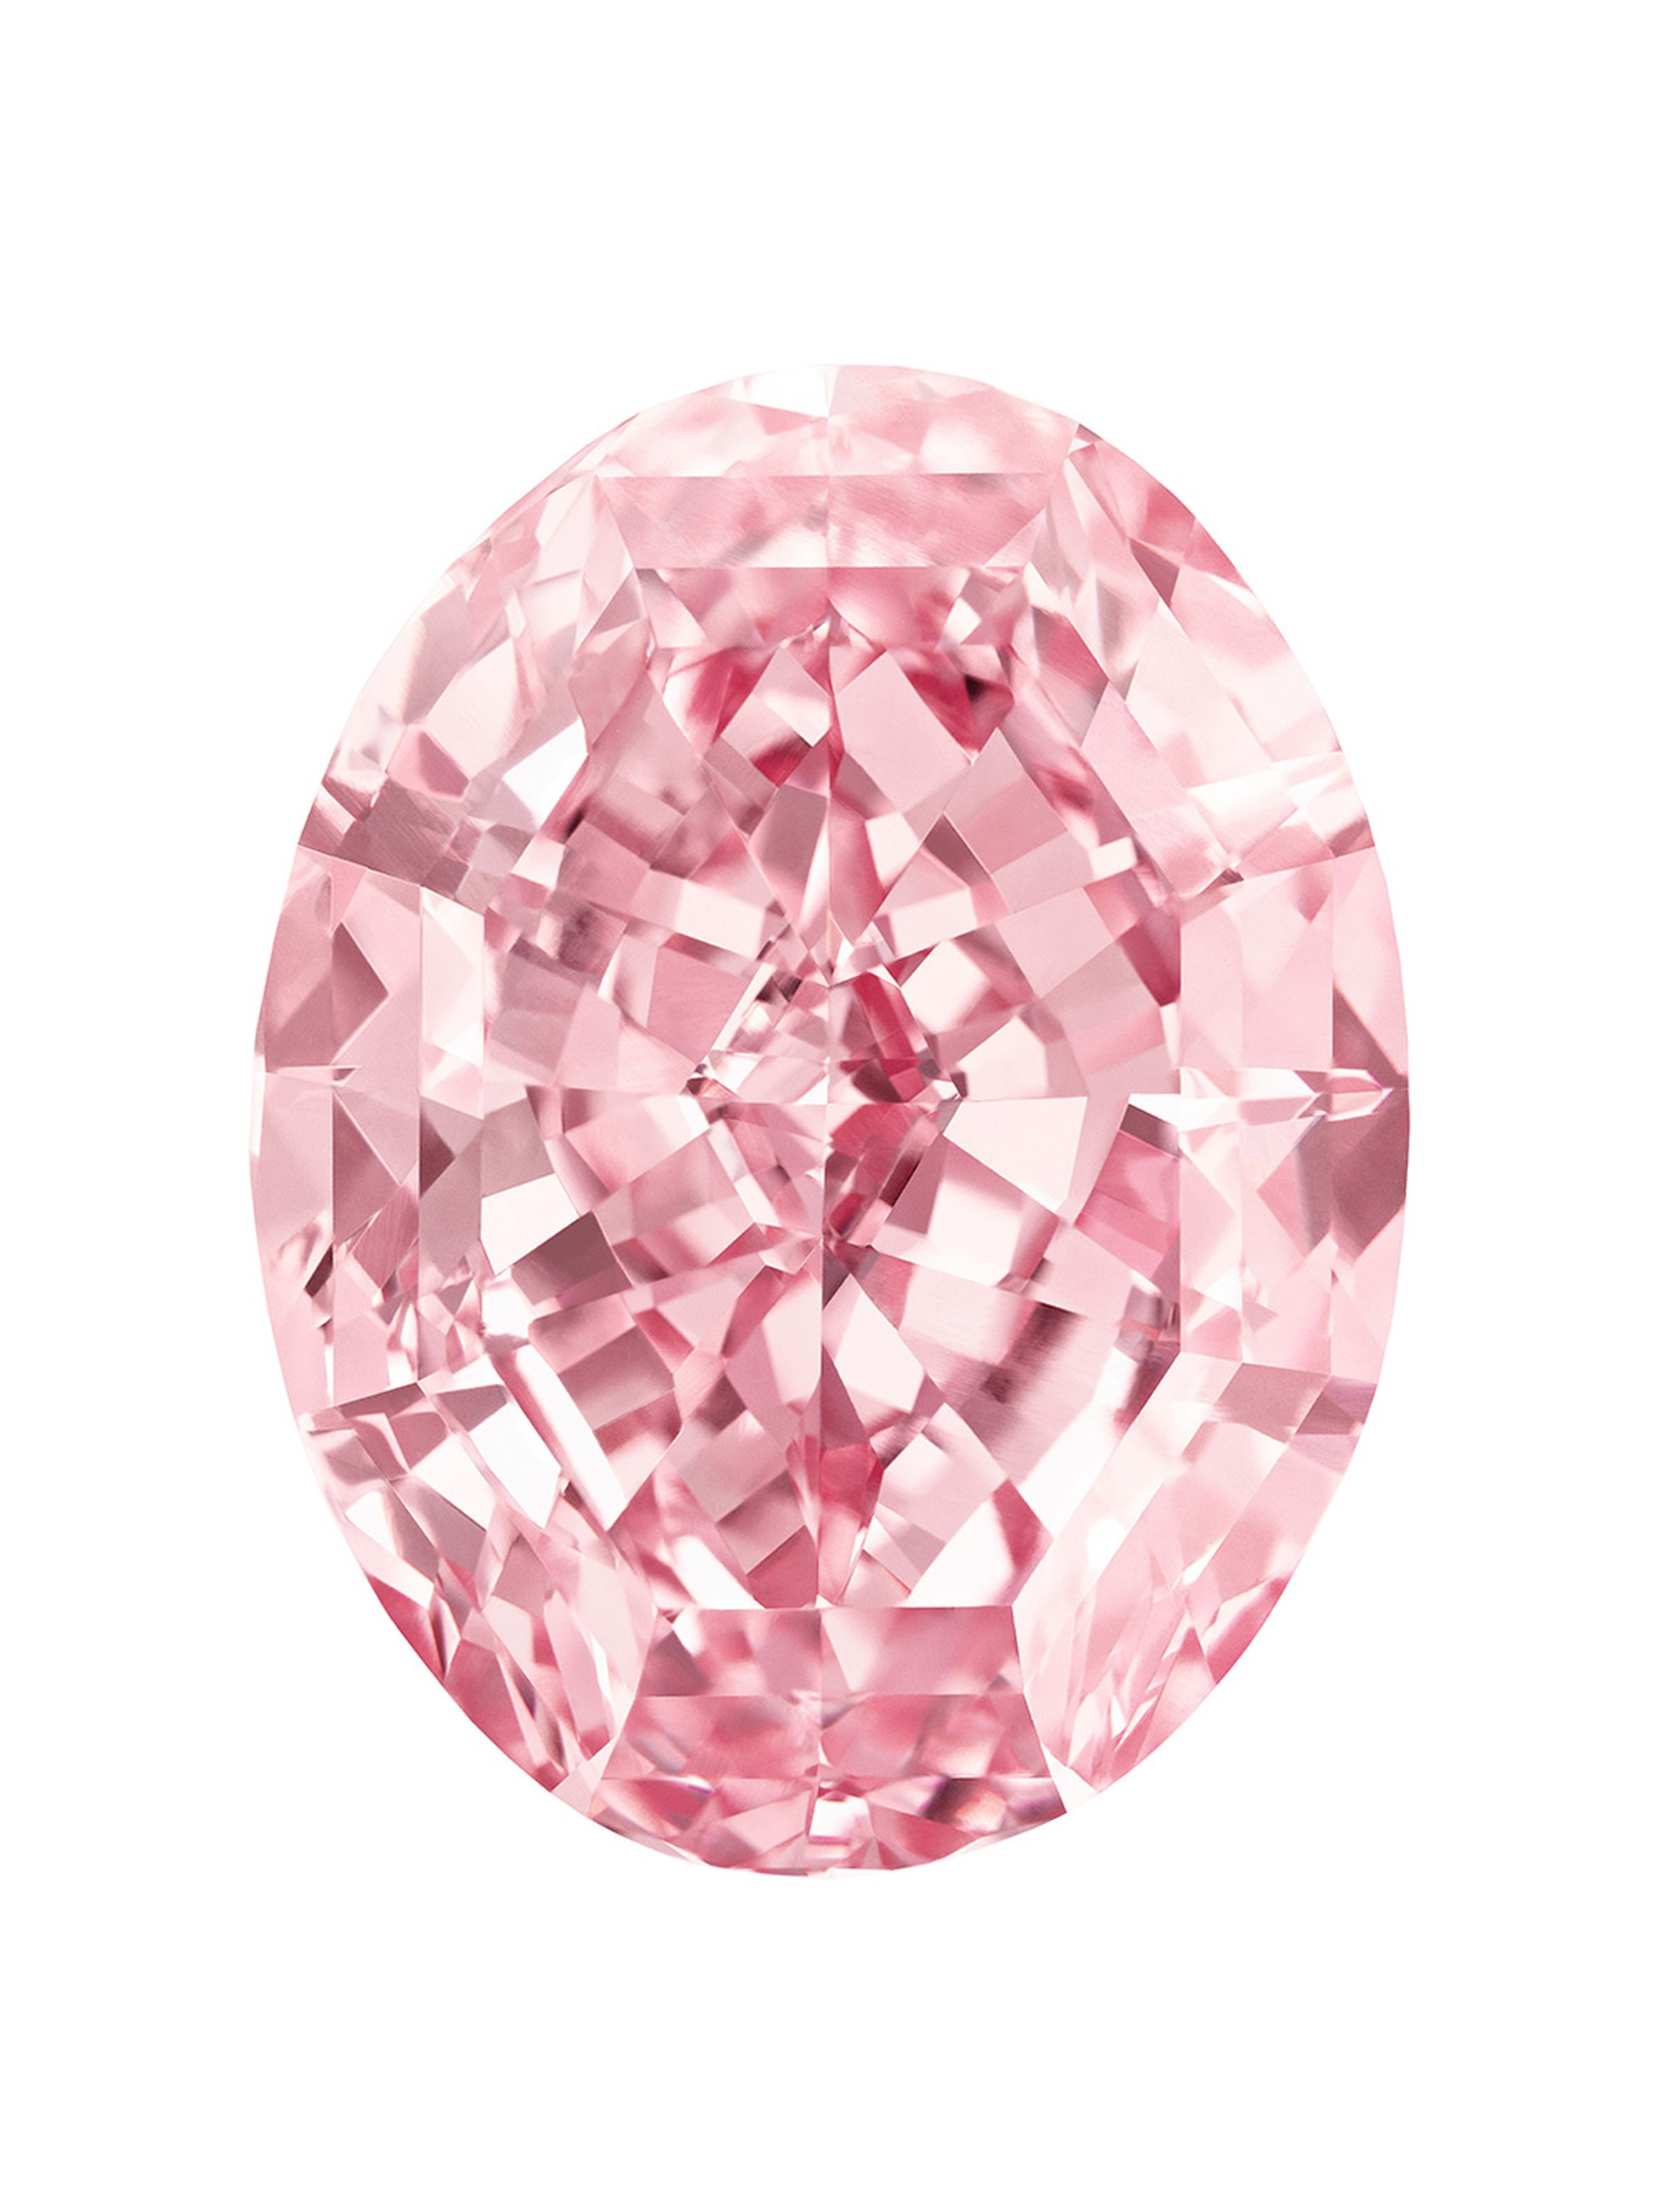 Called The Pink Star, this 59.60ct oval-cut pink diamond is the largest internally flawless Fancy Vivid pink diamond in the world. It was sold by Sotheby's for $83.19 million in November 2013 but the auction house was forced to reacquire it because the bu